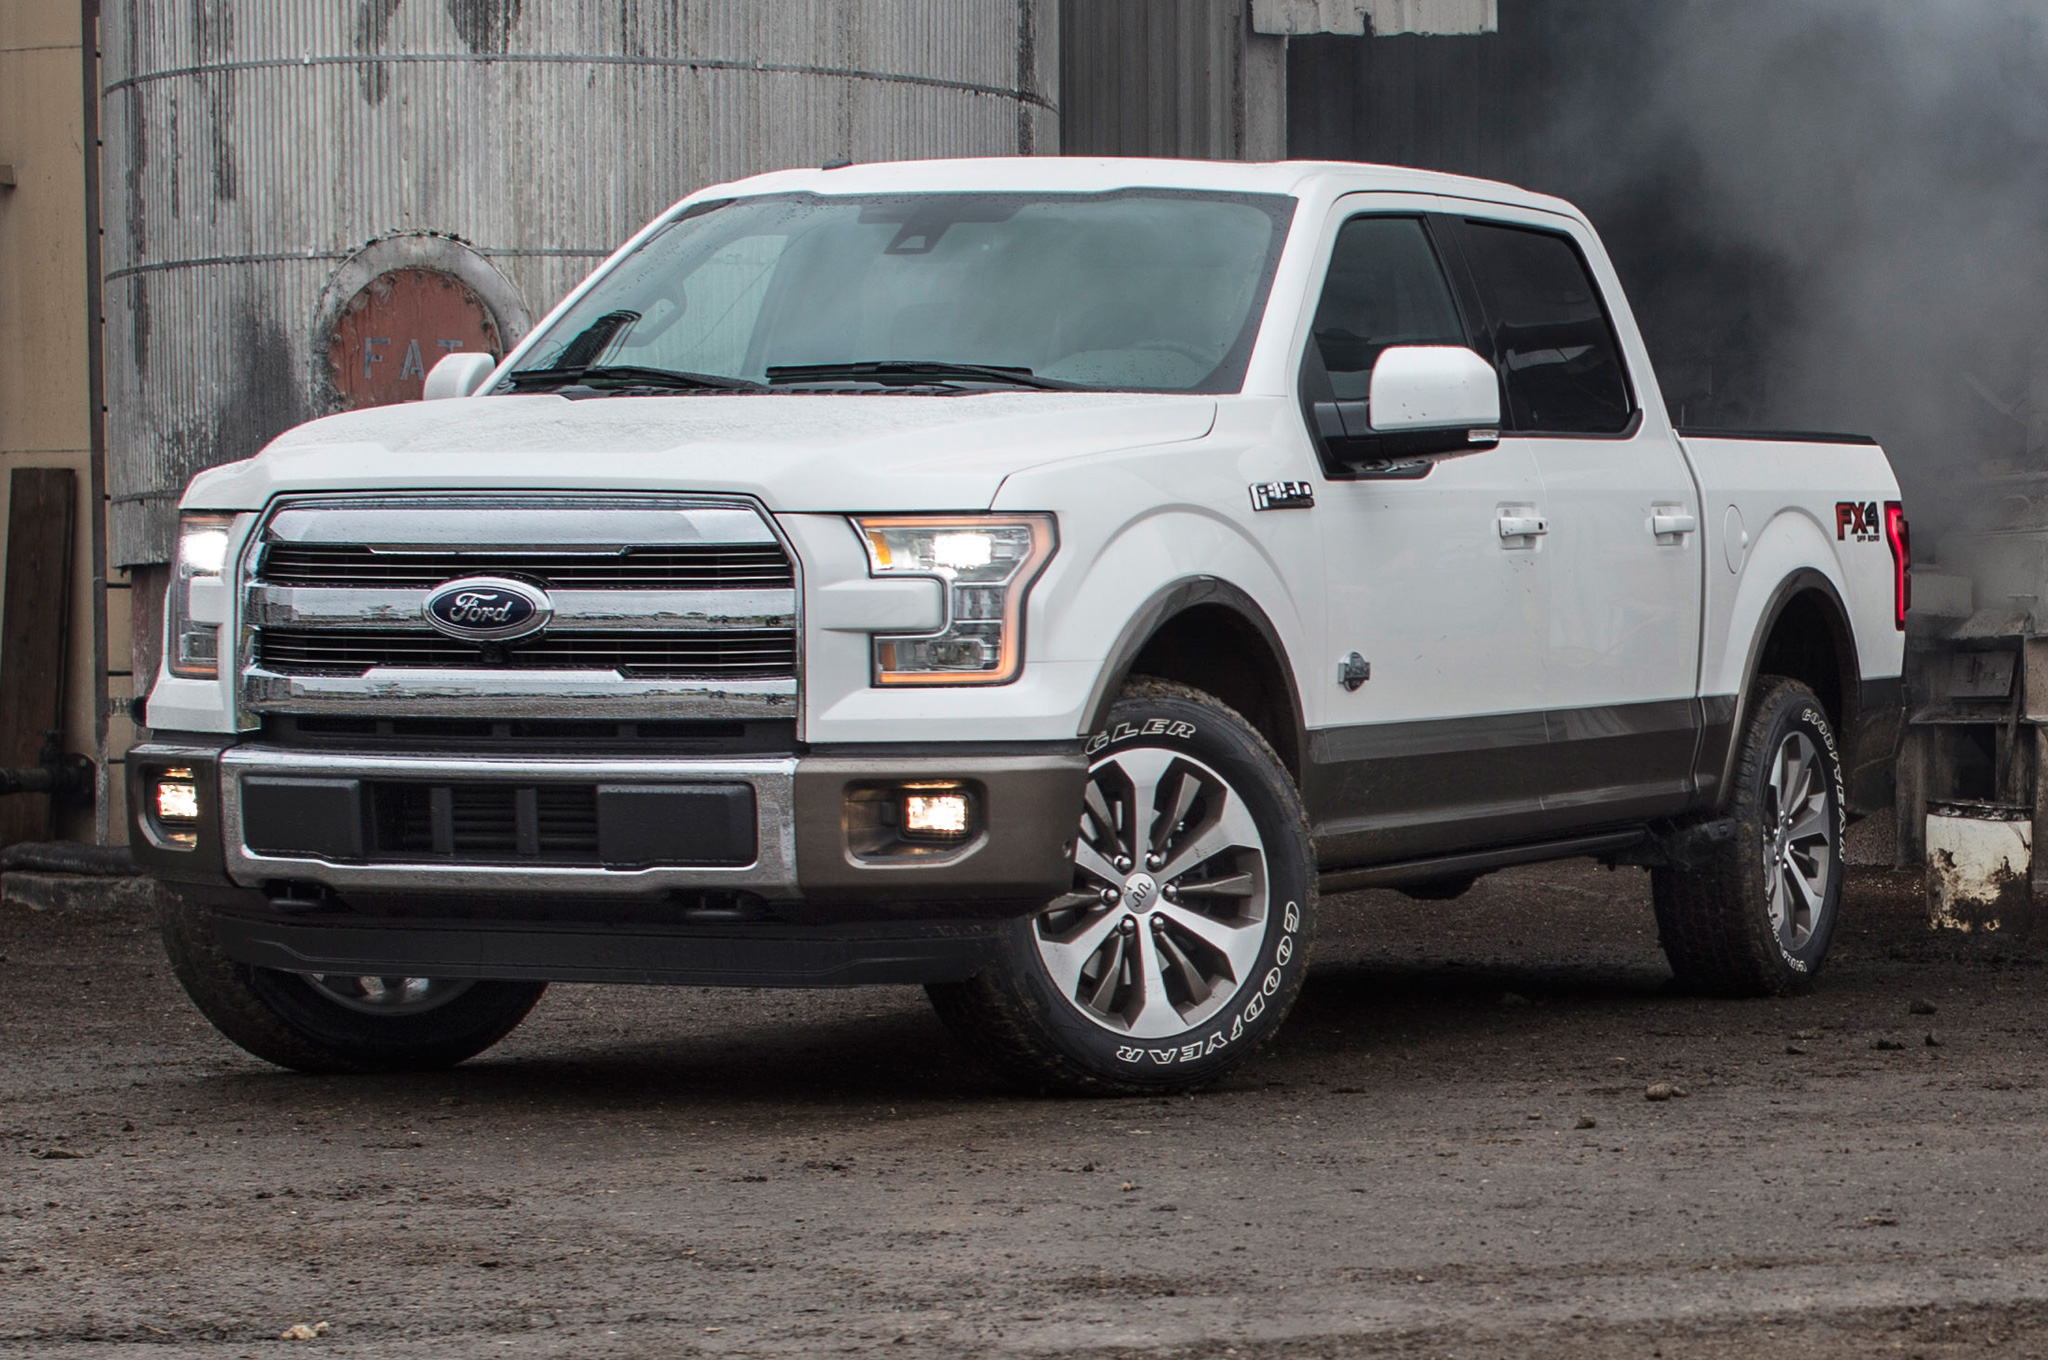 2015 ford f 150 starts at 26615 platinum model priced from 52155